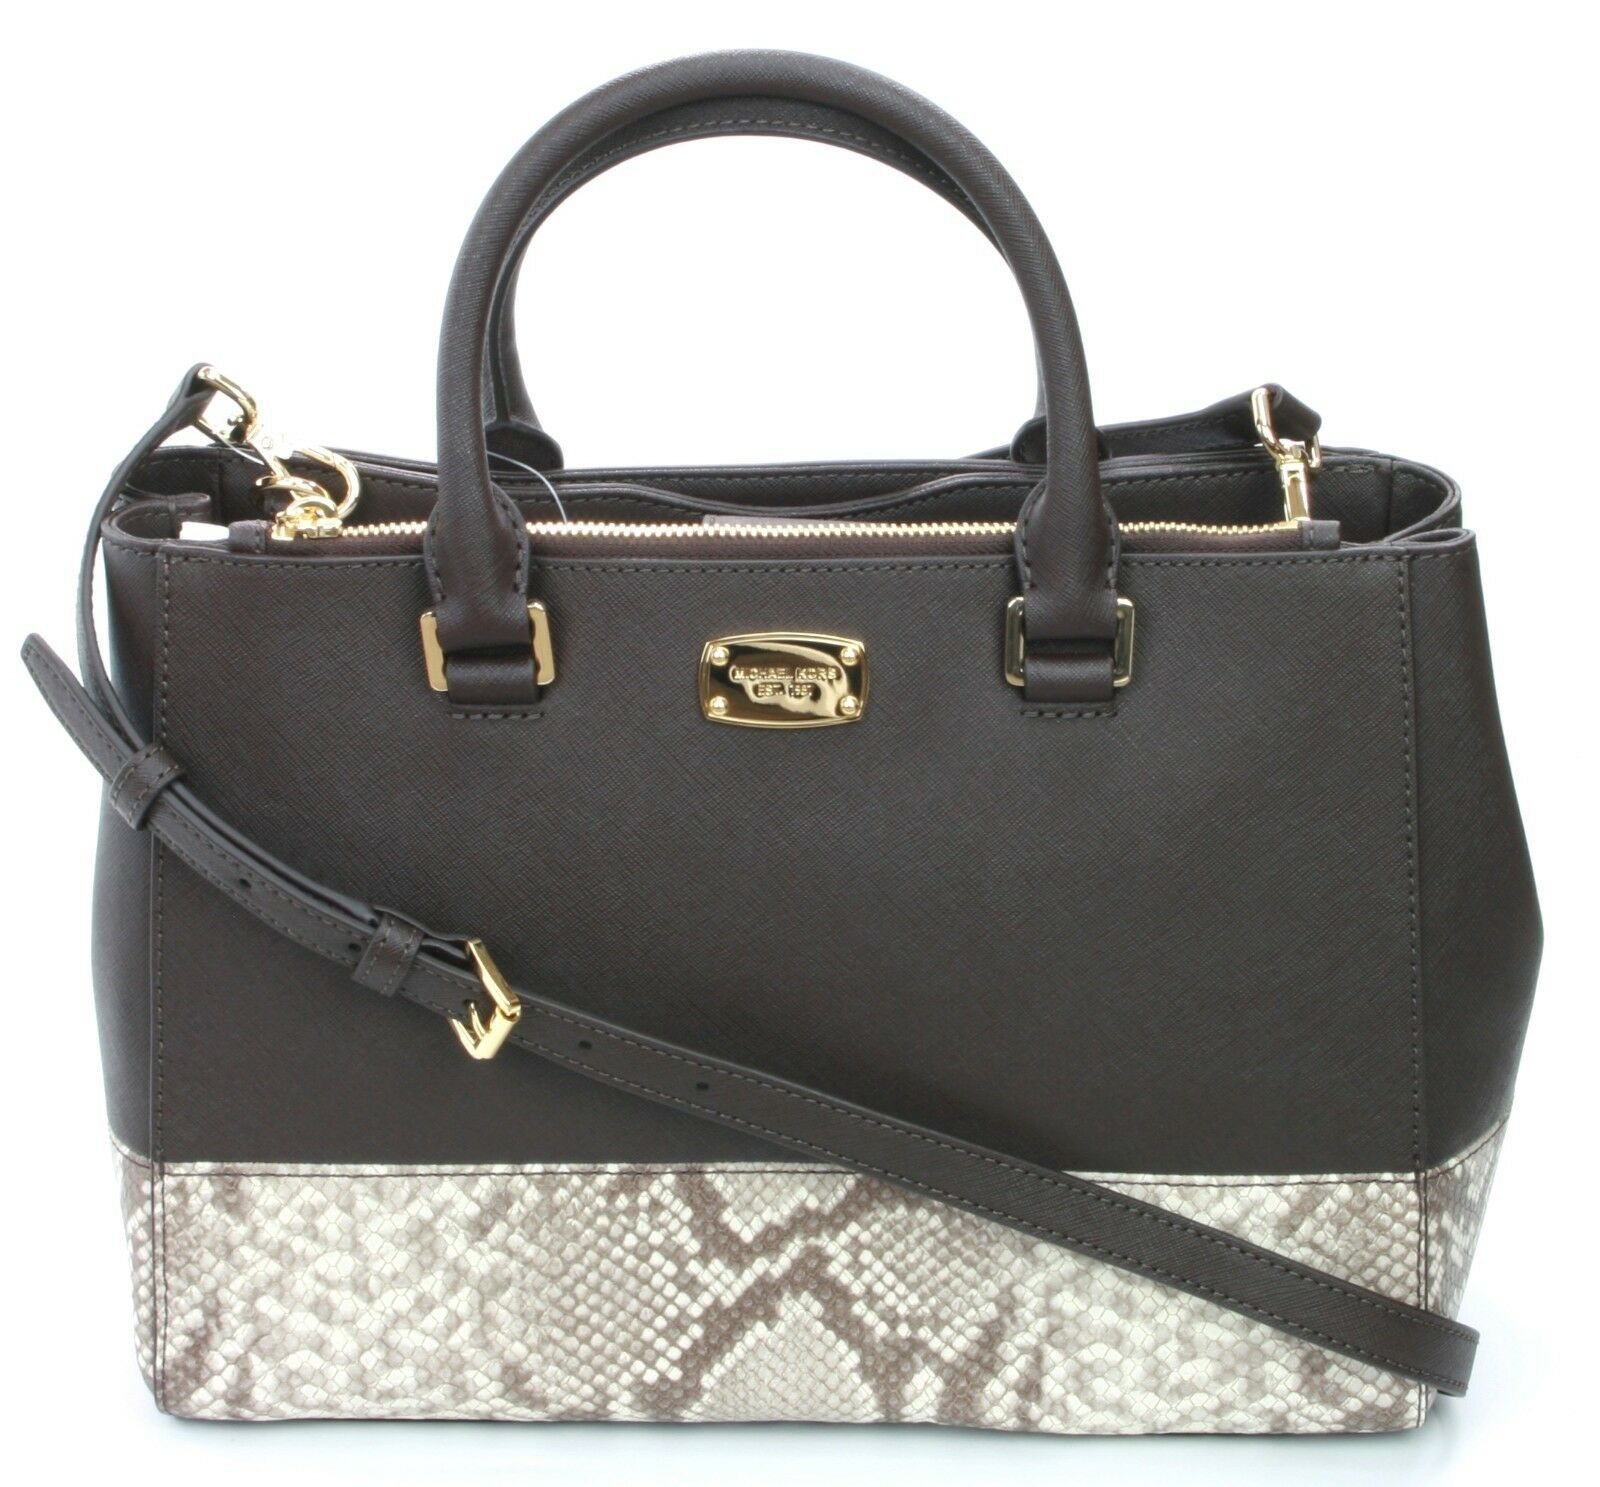 Michael Kors Satchel Bag Dark Sand Brown Embossed Snakeskin Leather Kellen - $296.59